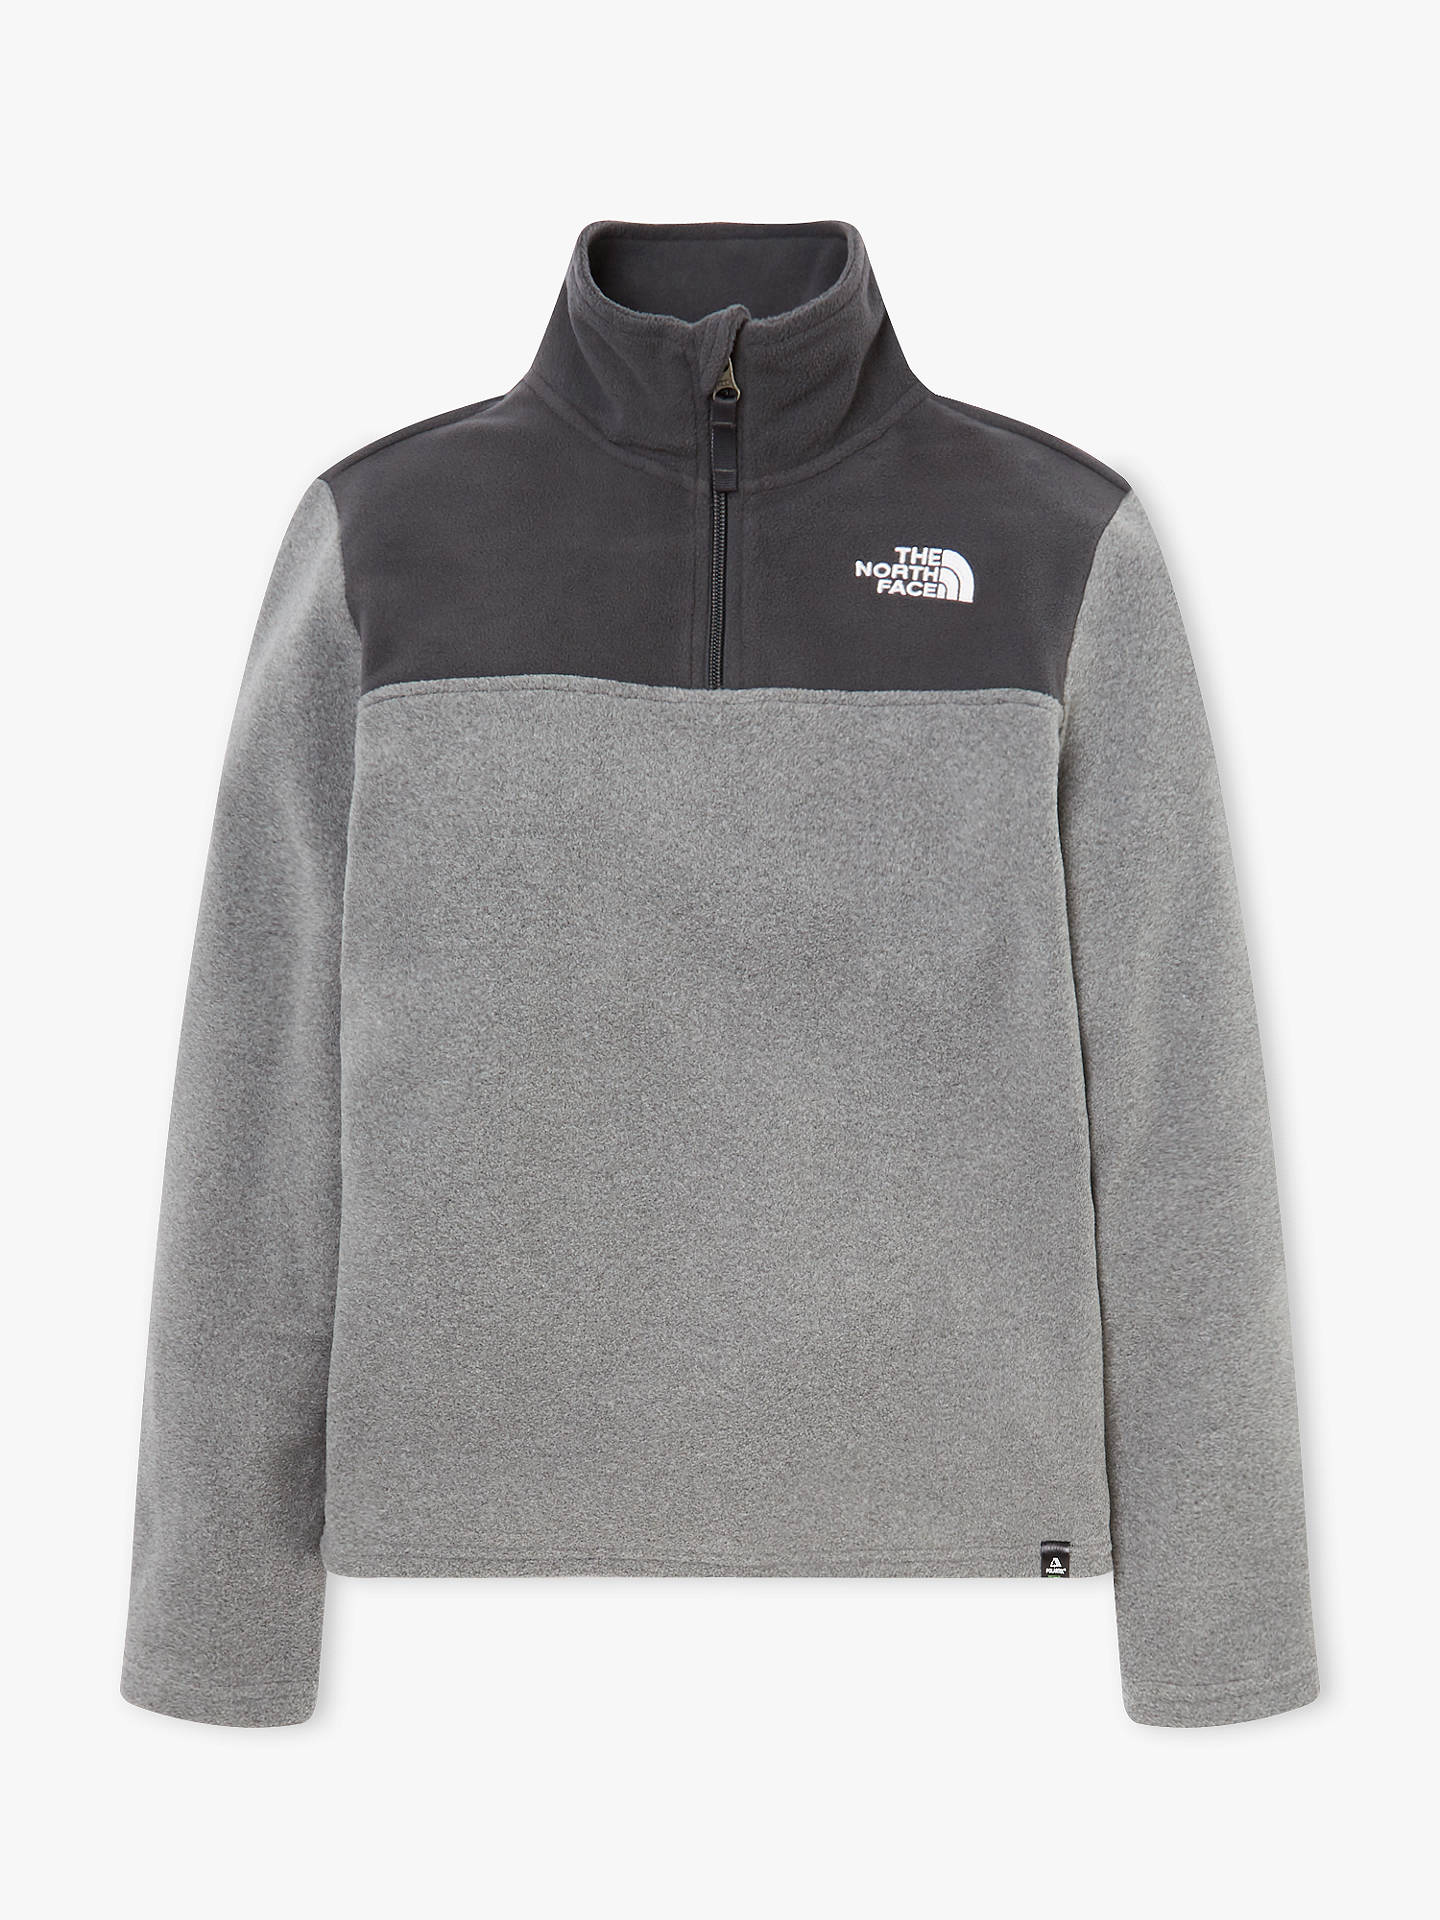 e2a694fff The North Face Boys' Glacier Fleece Jumper, Medium Grey